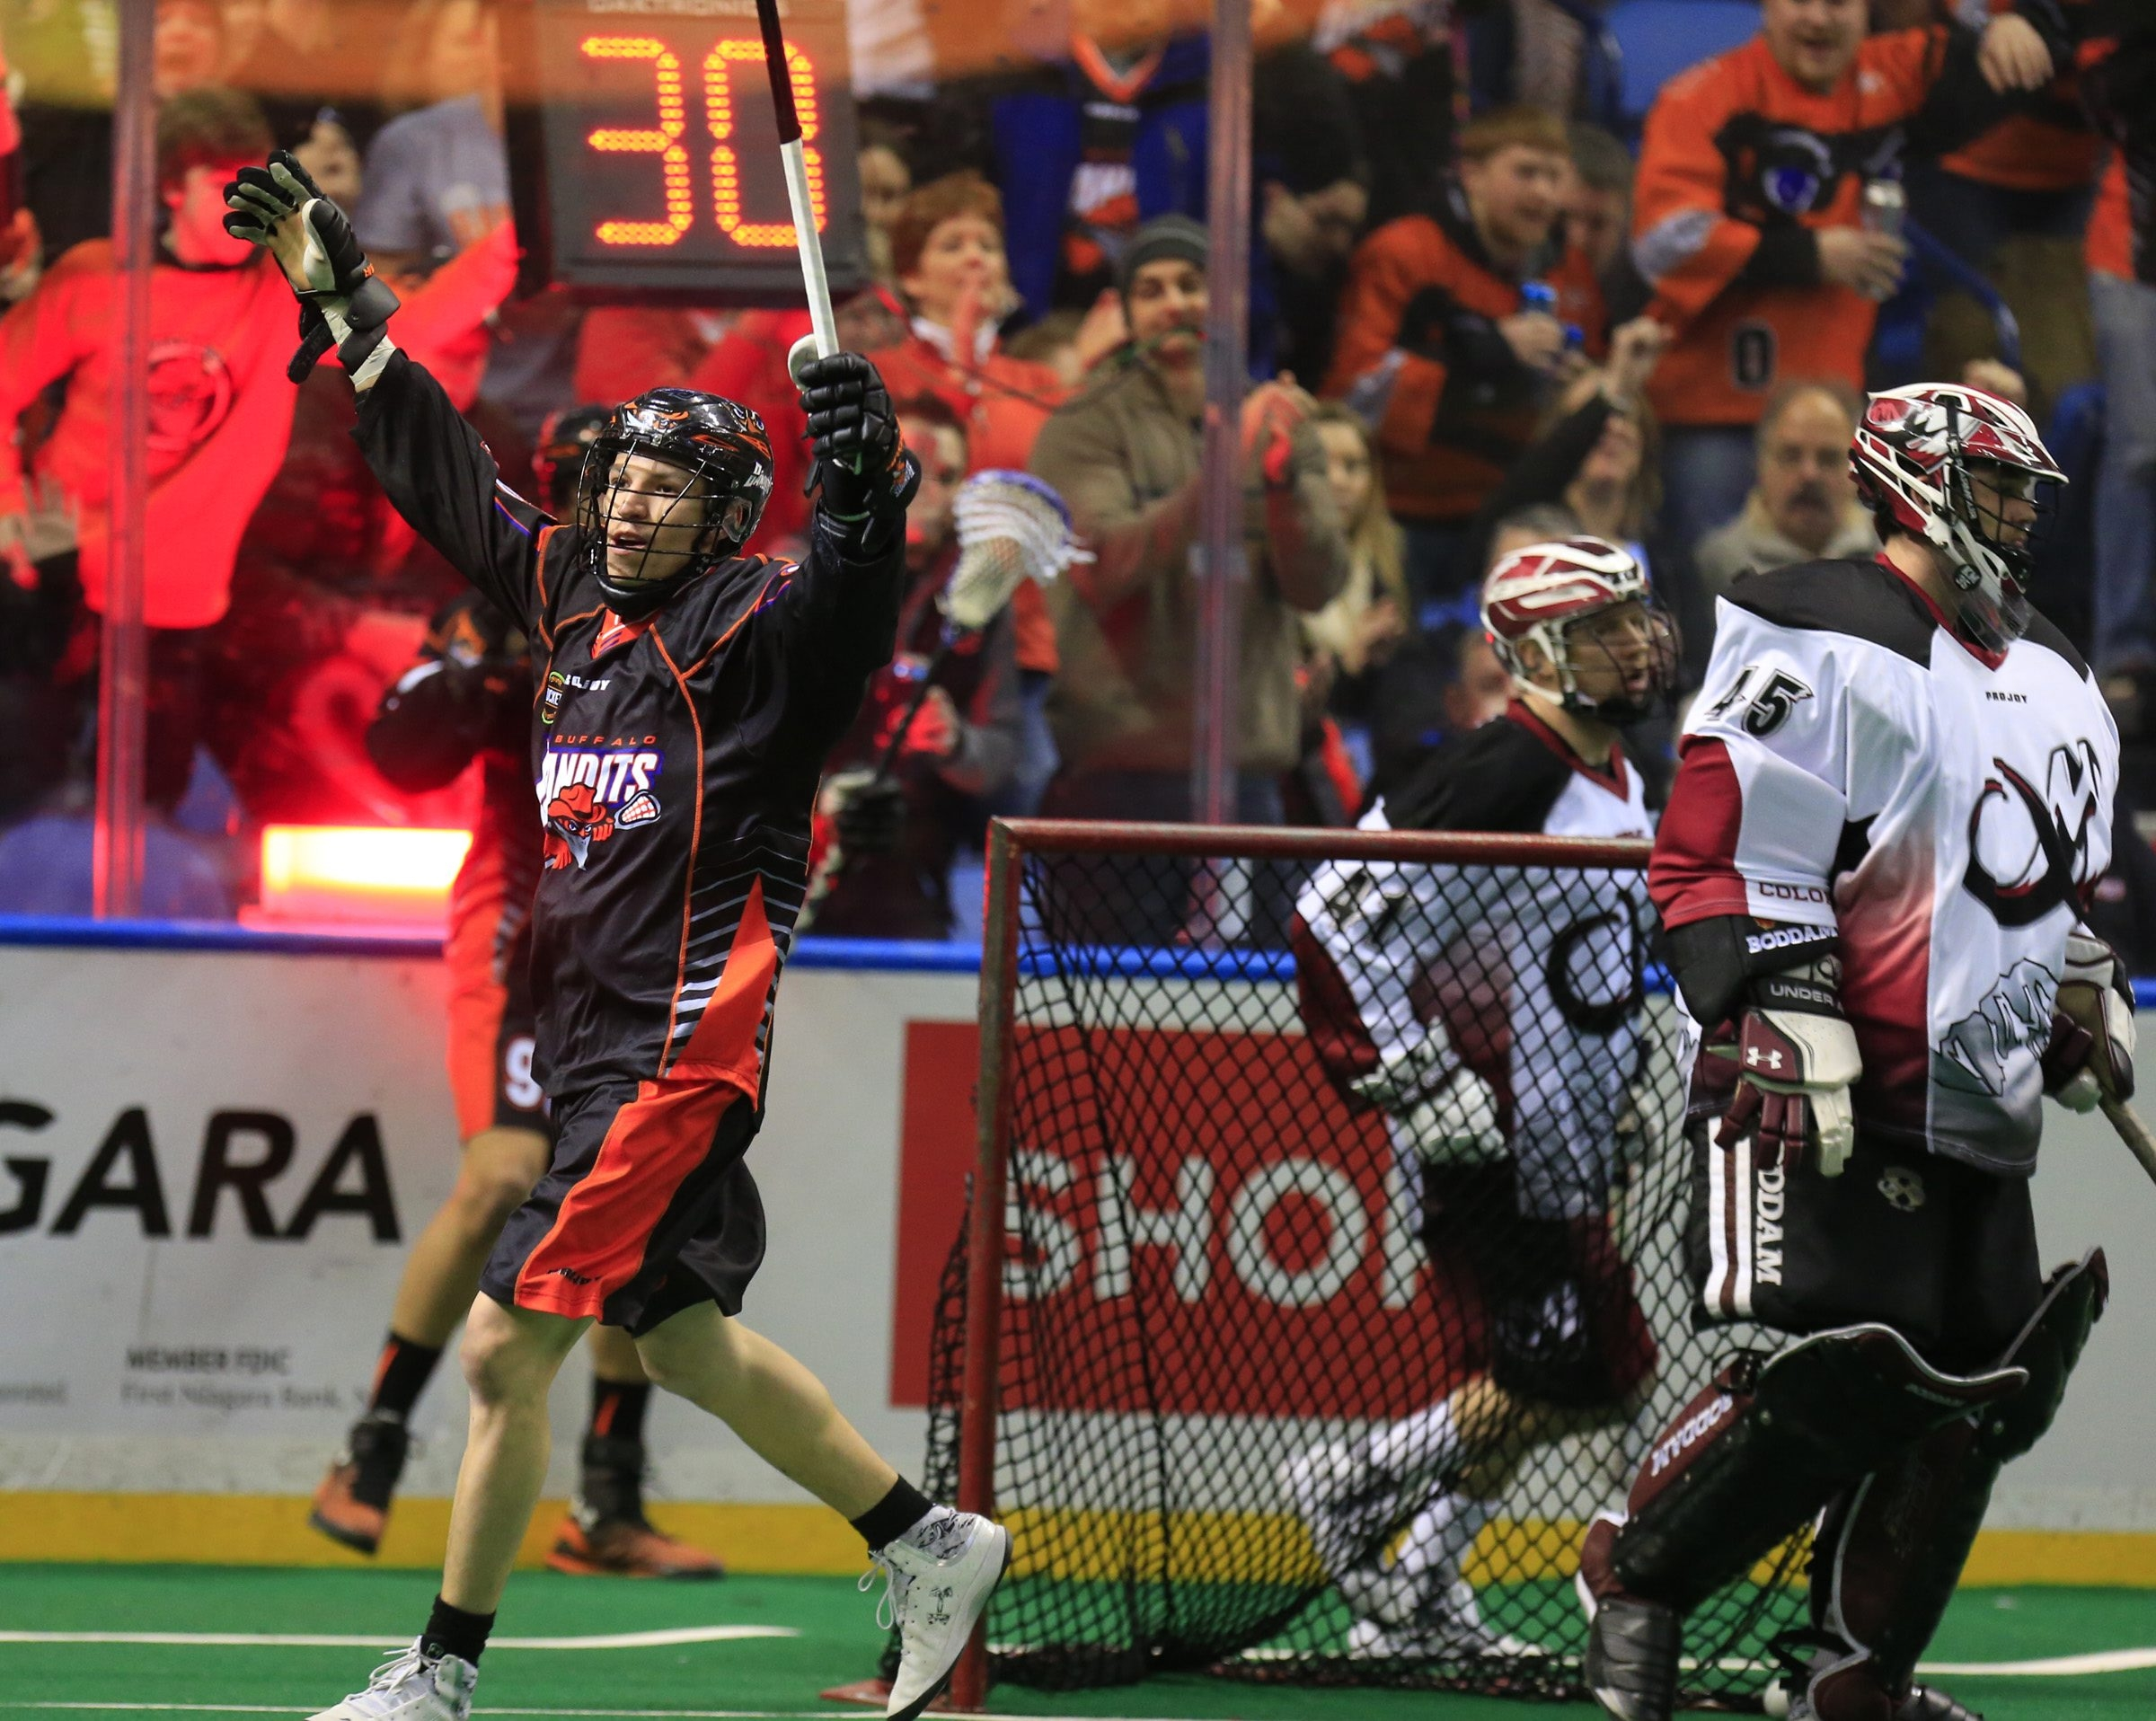 Buffalo Bandit Alex Kedoh Hil celebrates after scoring against the Colorado Mammoth during first half action at the First Niagara Center in Buffalo,NY on Saturday, Feb. 28, 2015.(Harry Scull Jr./Buffalo News)